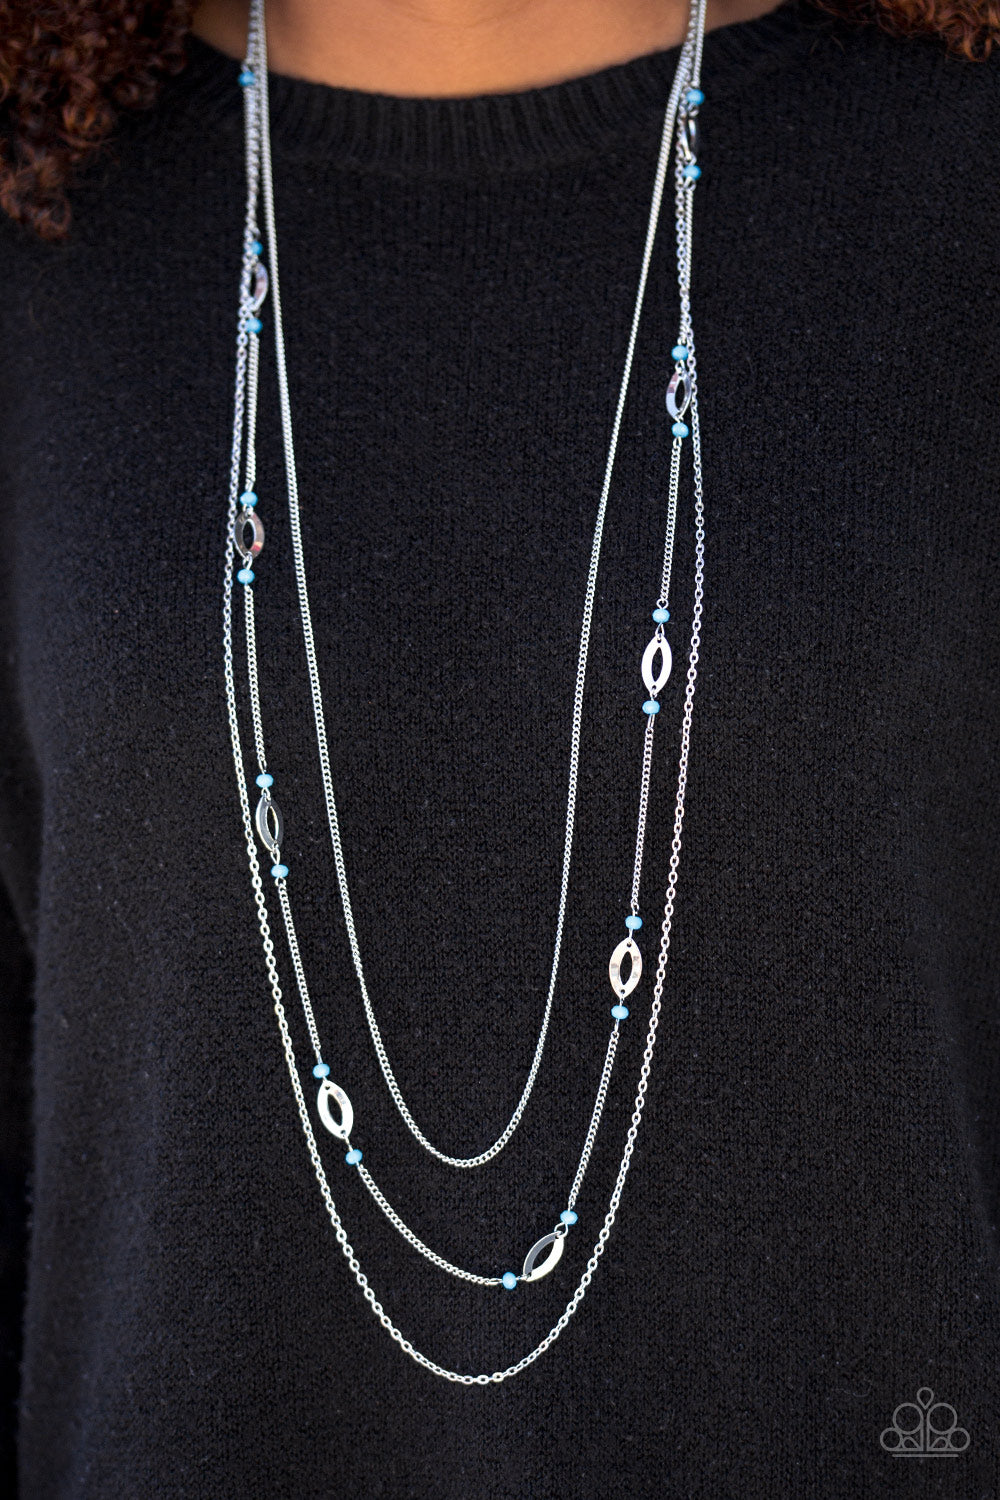 Afternoon Glow - blue - Paparazzi necklace